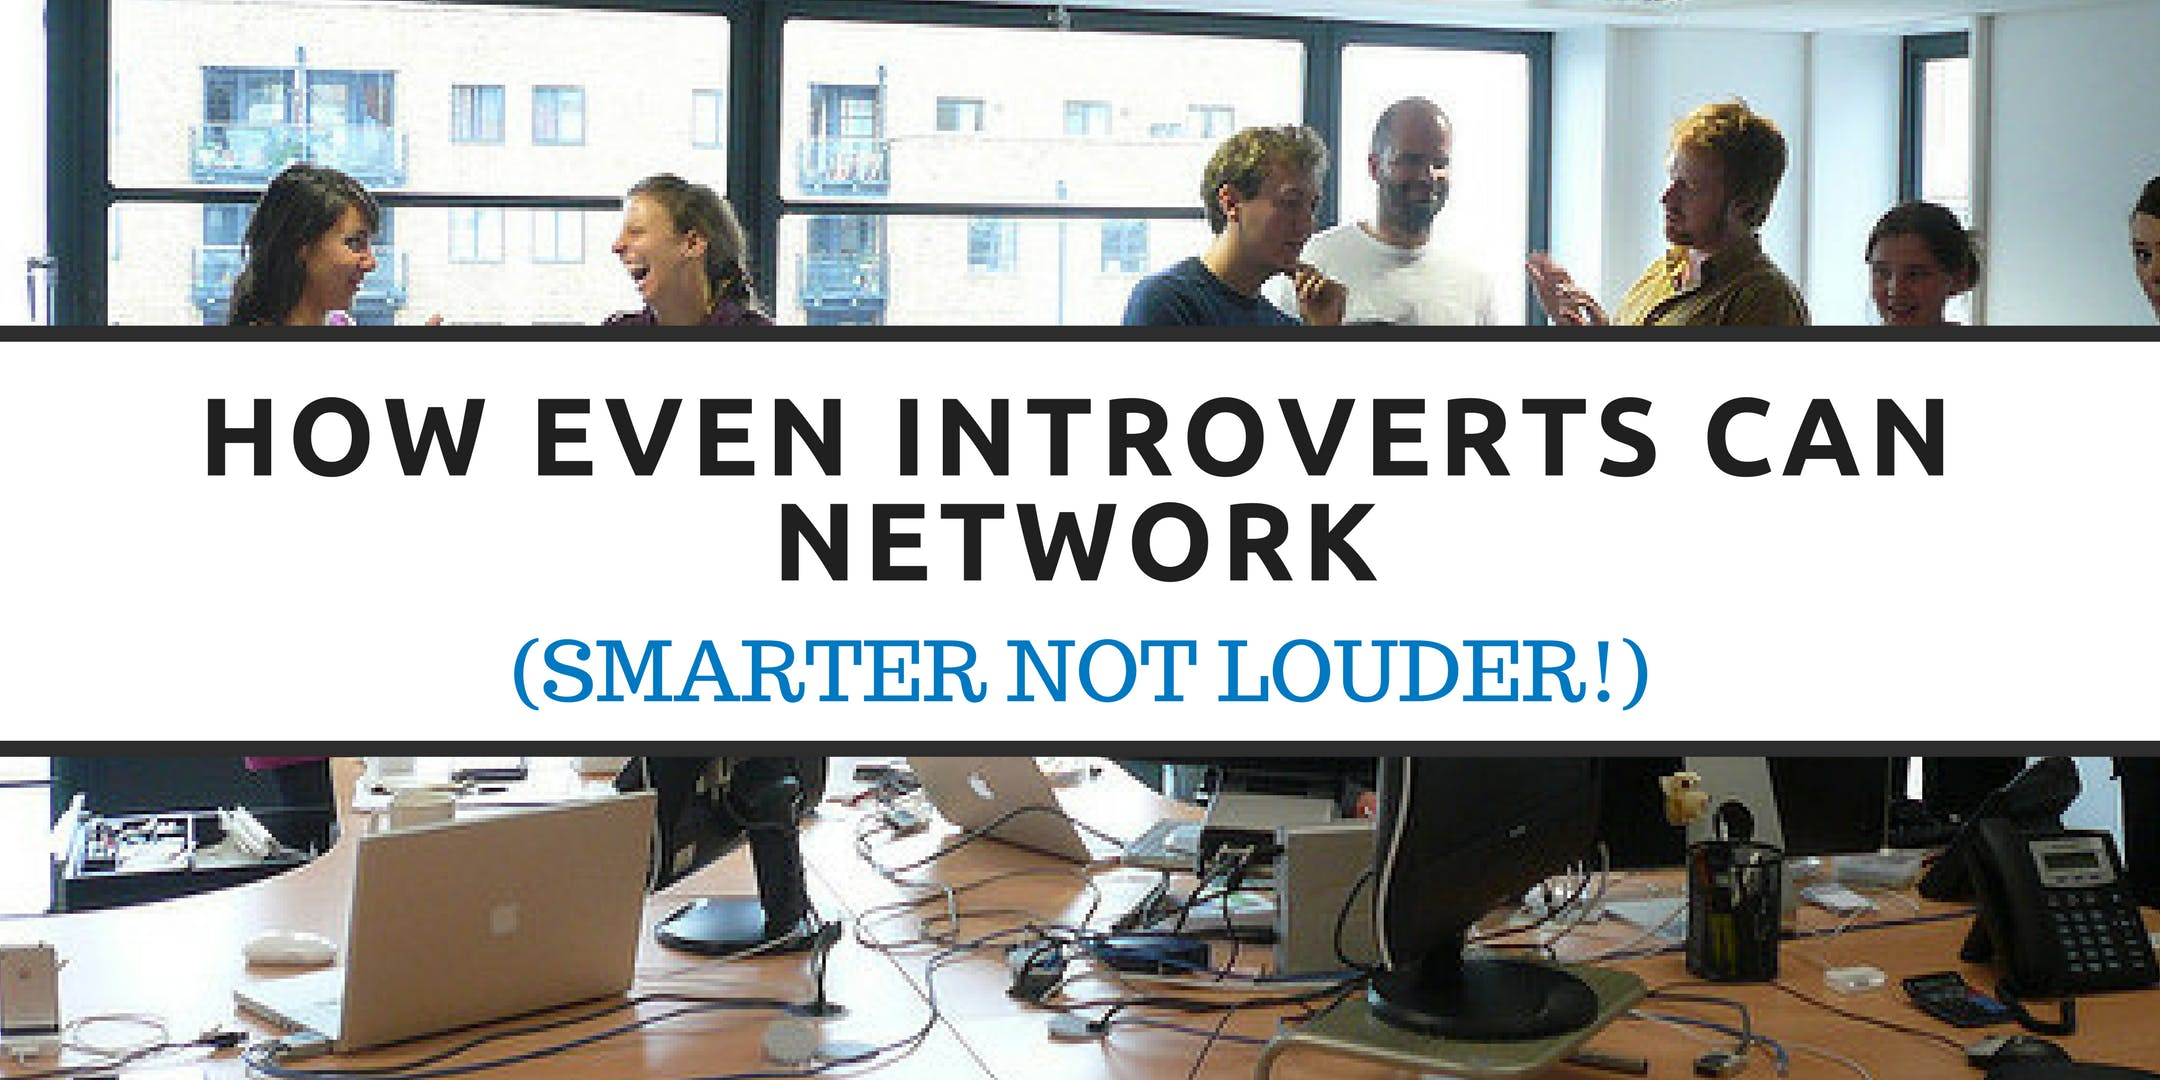 How Even Introverts Can Network (Smarter not